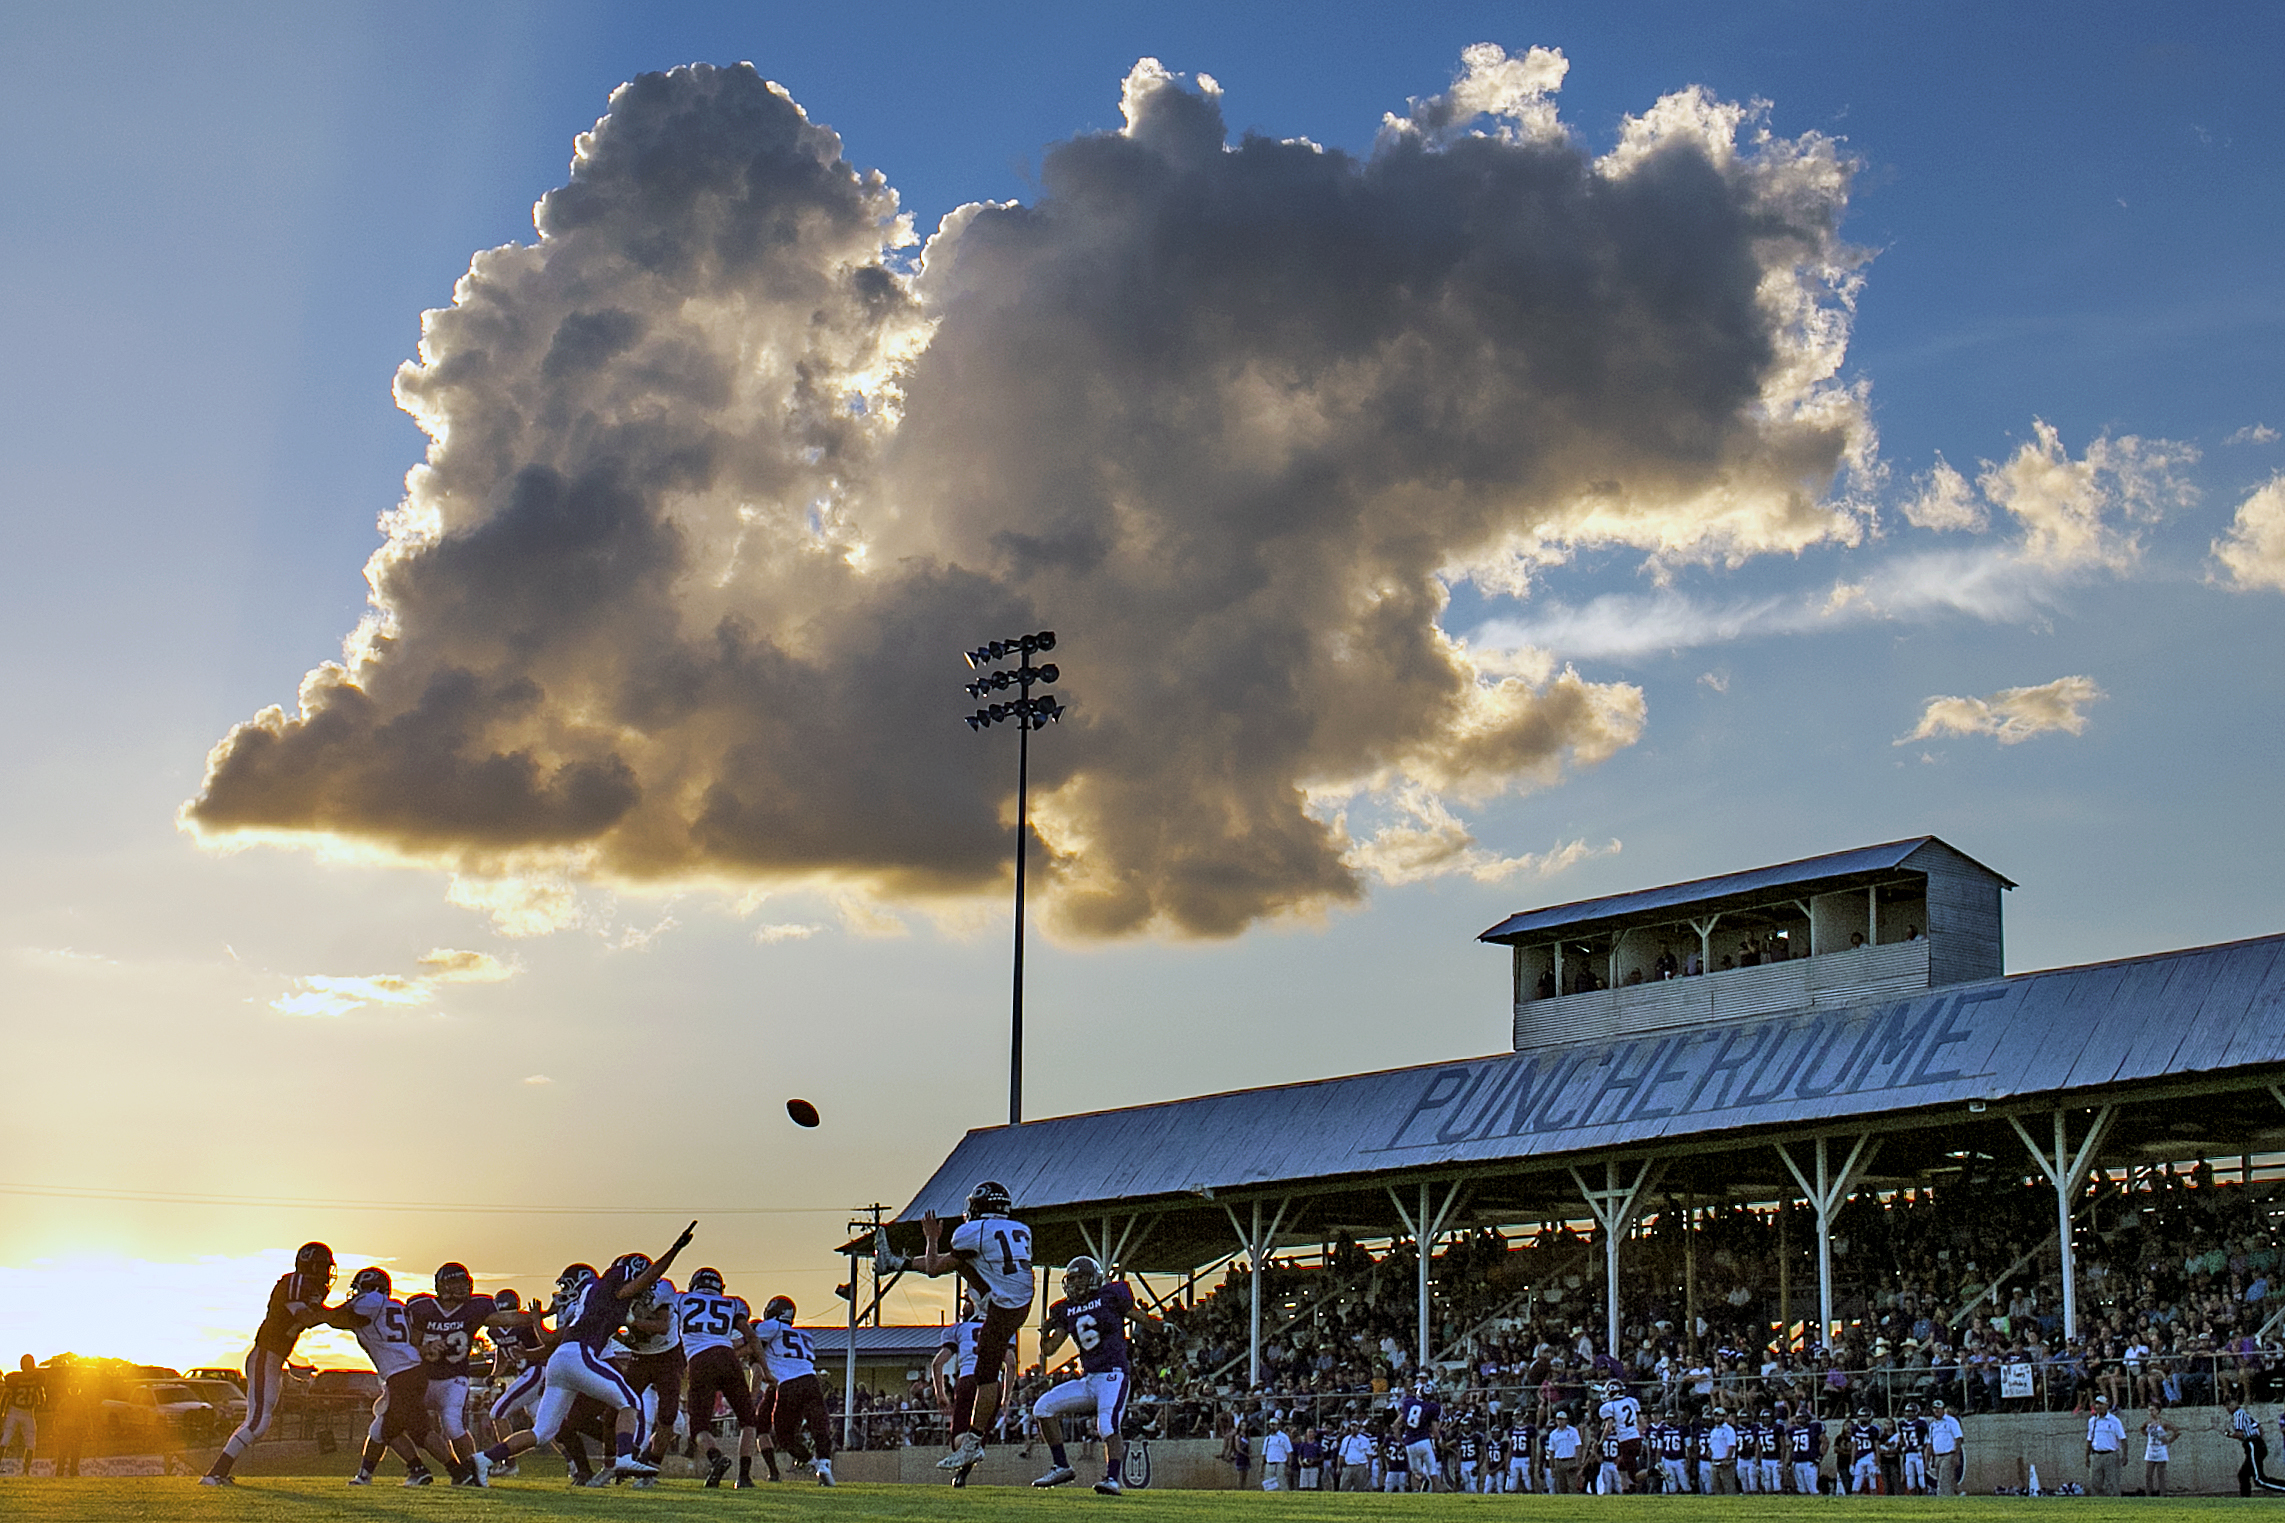 """The De Leon Bearcats are forced to punt as the sun sets on The Puncher Dome during their Week 2 visit to Mason on September 5, 2014 at R. Clinton Schulze Stadium in Mason, Texas. Better known as """"The Puncher Dome,"""" Schulze Stadium was built in the late 1930's and originally used as a racetrack. It owes its nickname to the covered grandstands on the home side of the field. Home of the Mason Punchers, a 2A school with just under 200 enrolled students, The Puncher Dome has been witness to over 70 seasons of Puncher football, with its most successful one being the state championship campaign of 2011."""